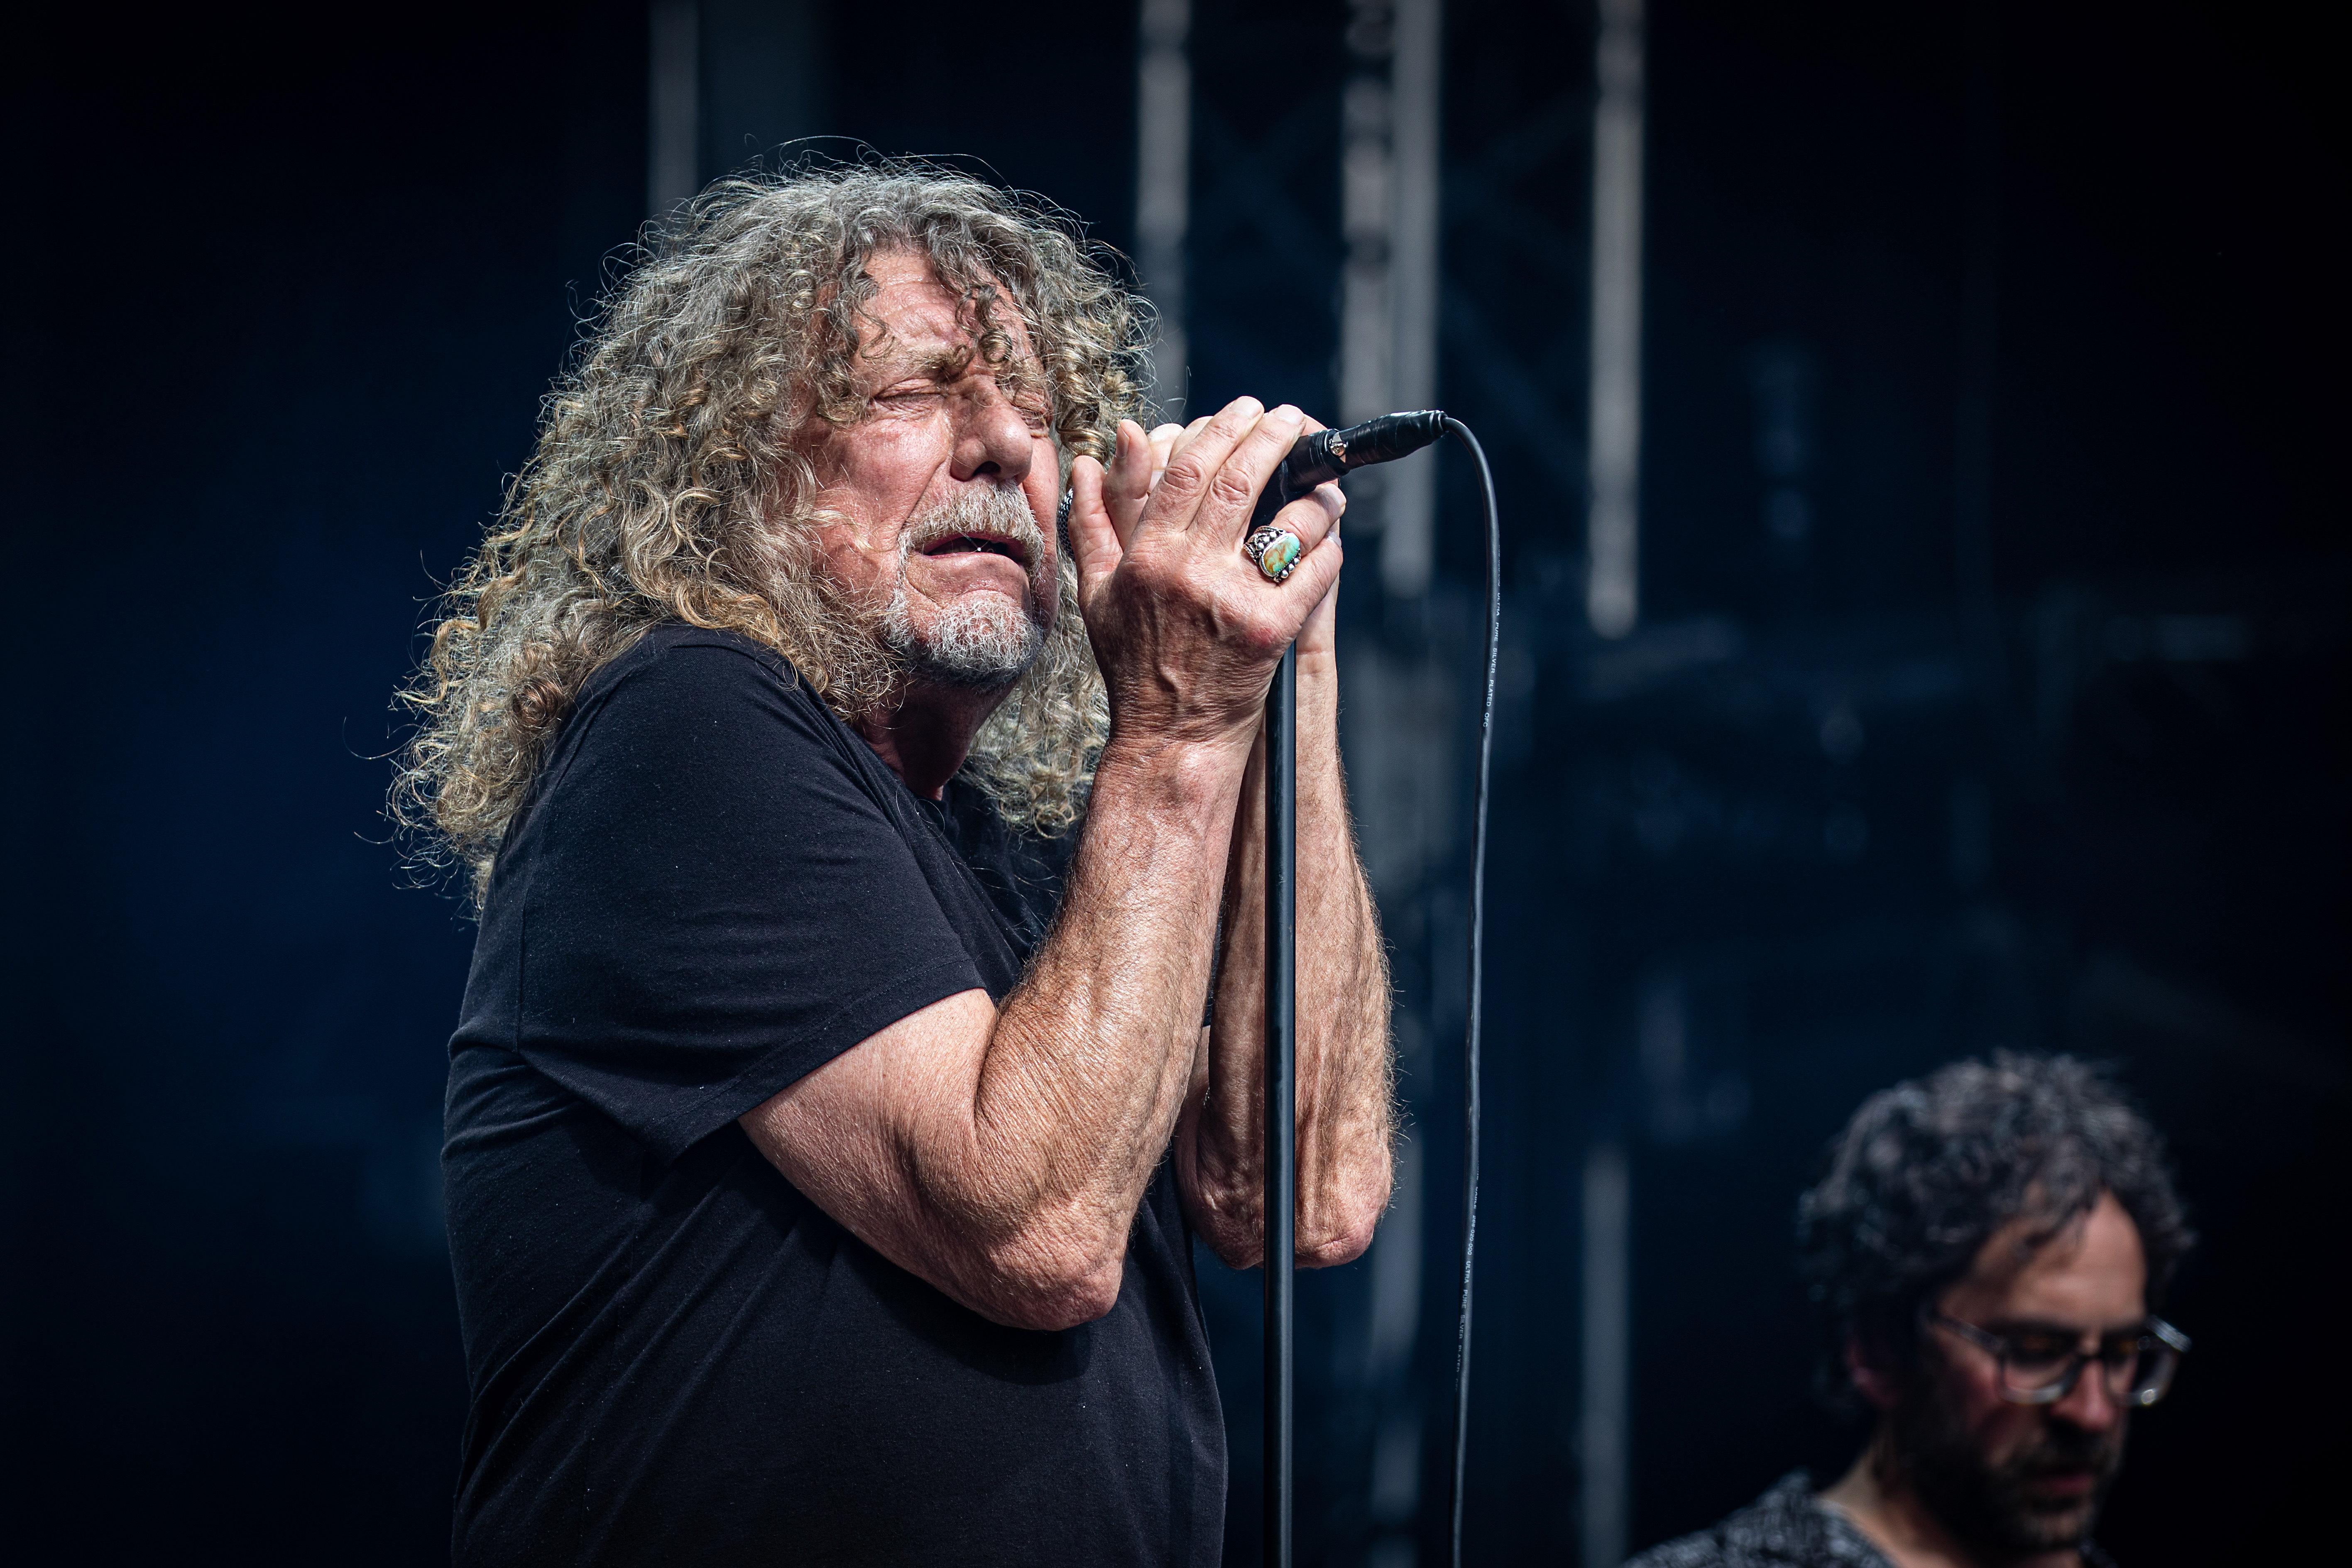 Aahhh! Watch Led Zeppelin's Robert Plant perform 'Immigrant Song' for first time in 24 years